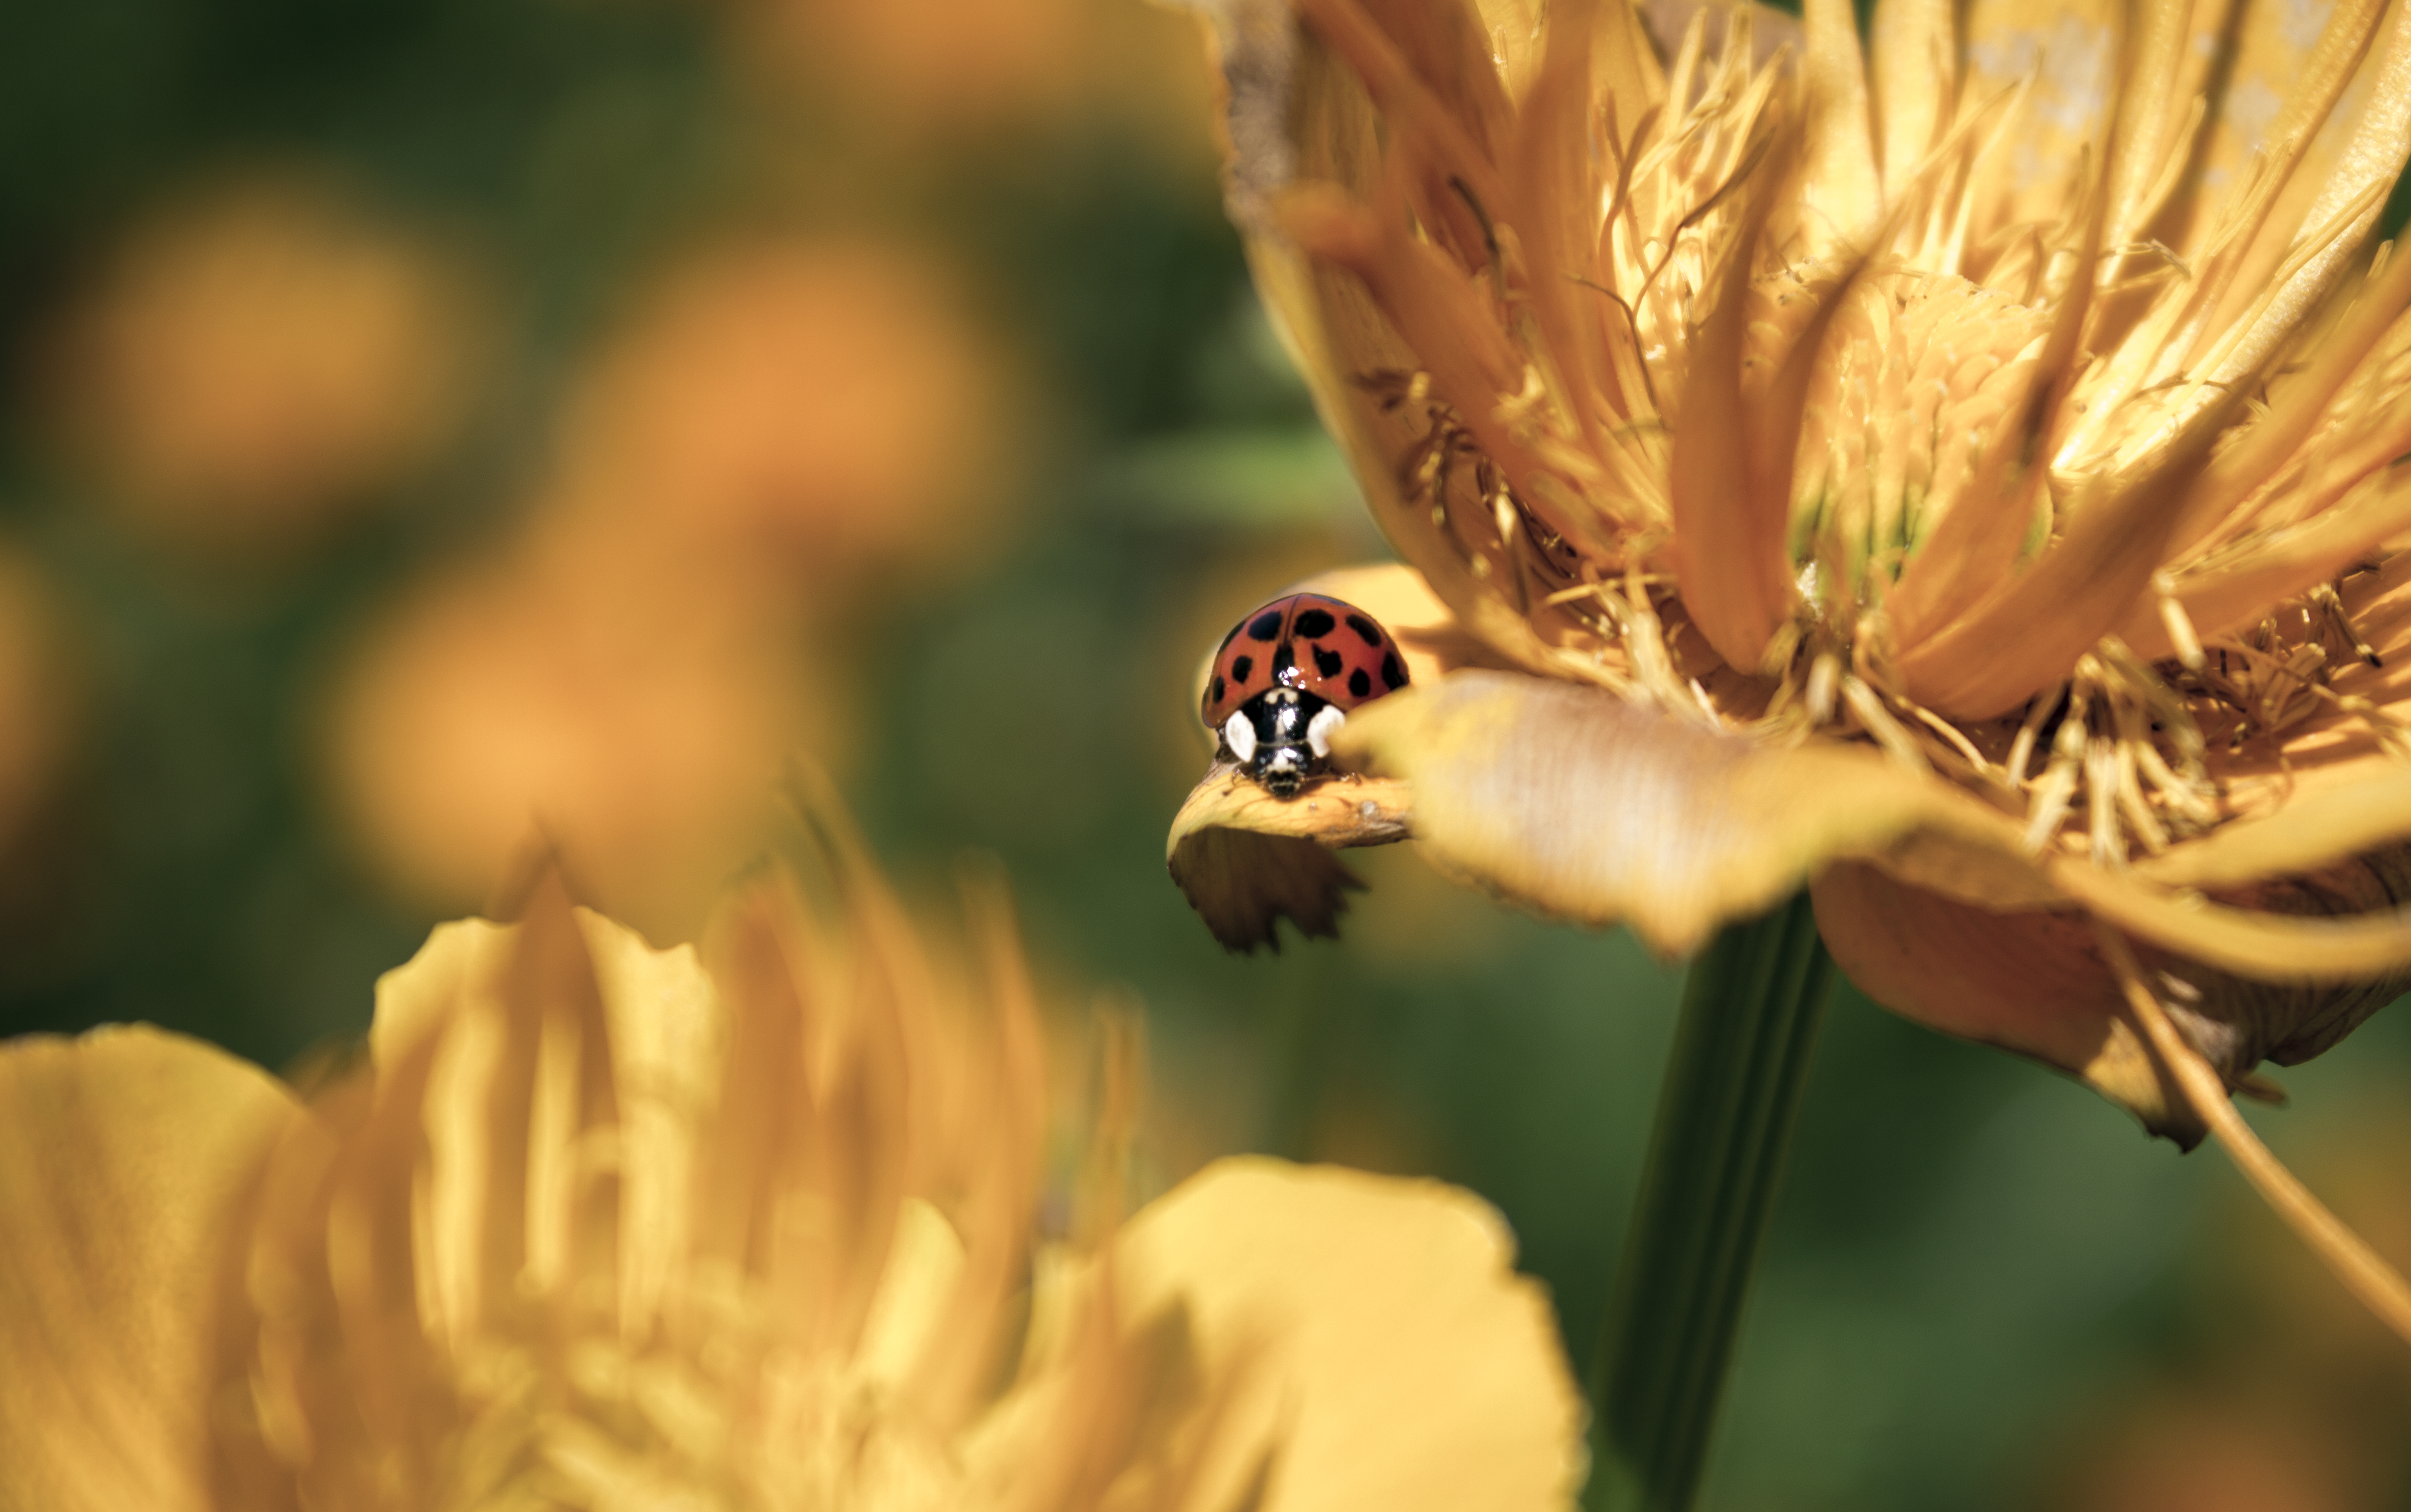 Ladybug on Yellow/Orange flowers by Danimatie